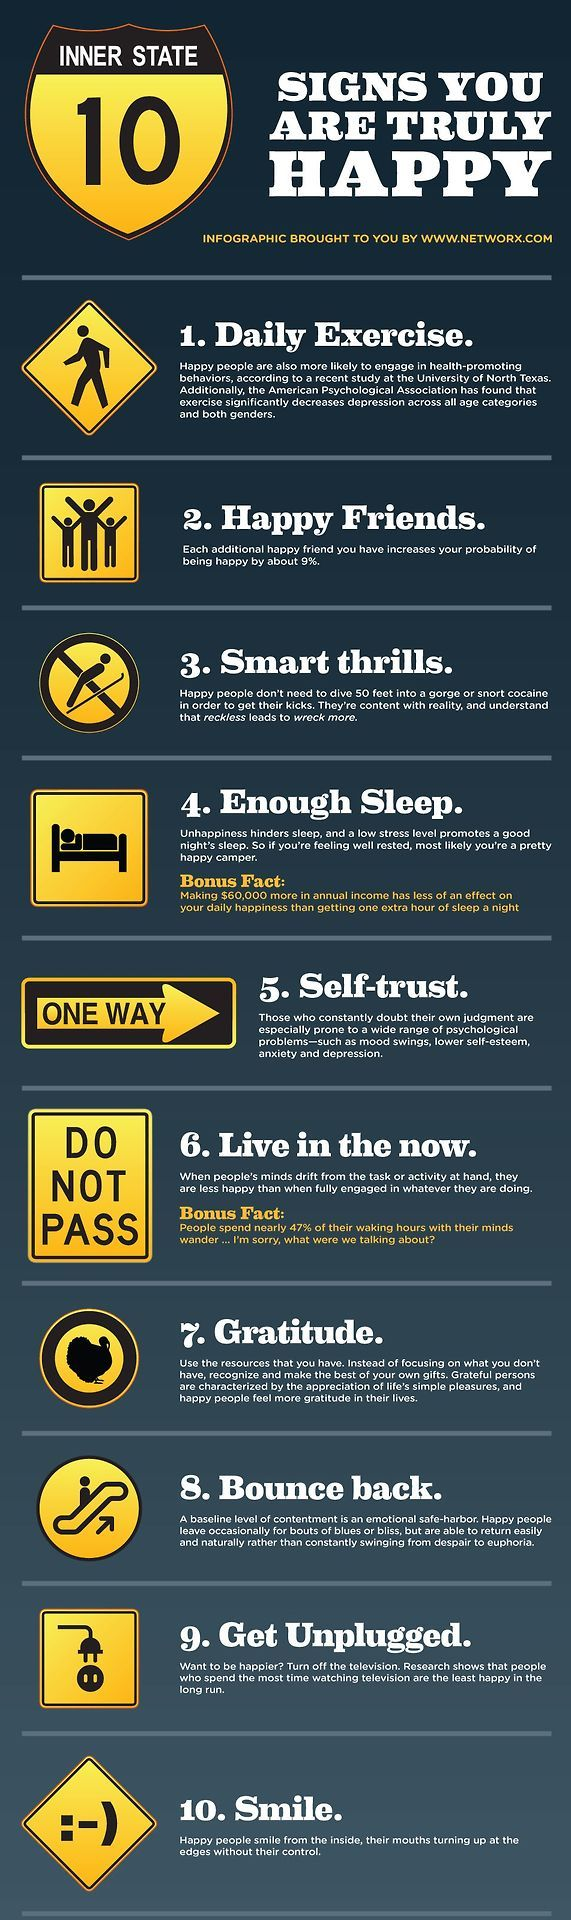 12/14/13 (4-4) 10 signs that you are truly happy..